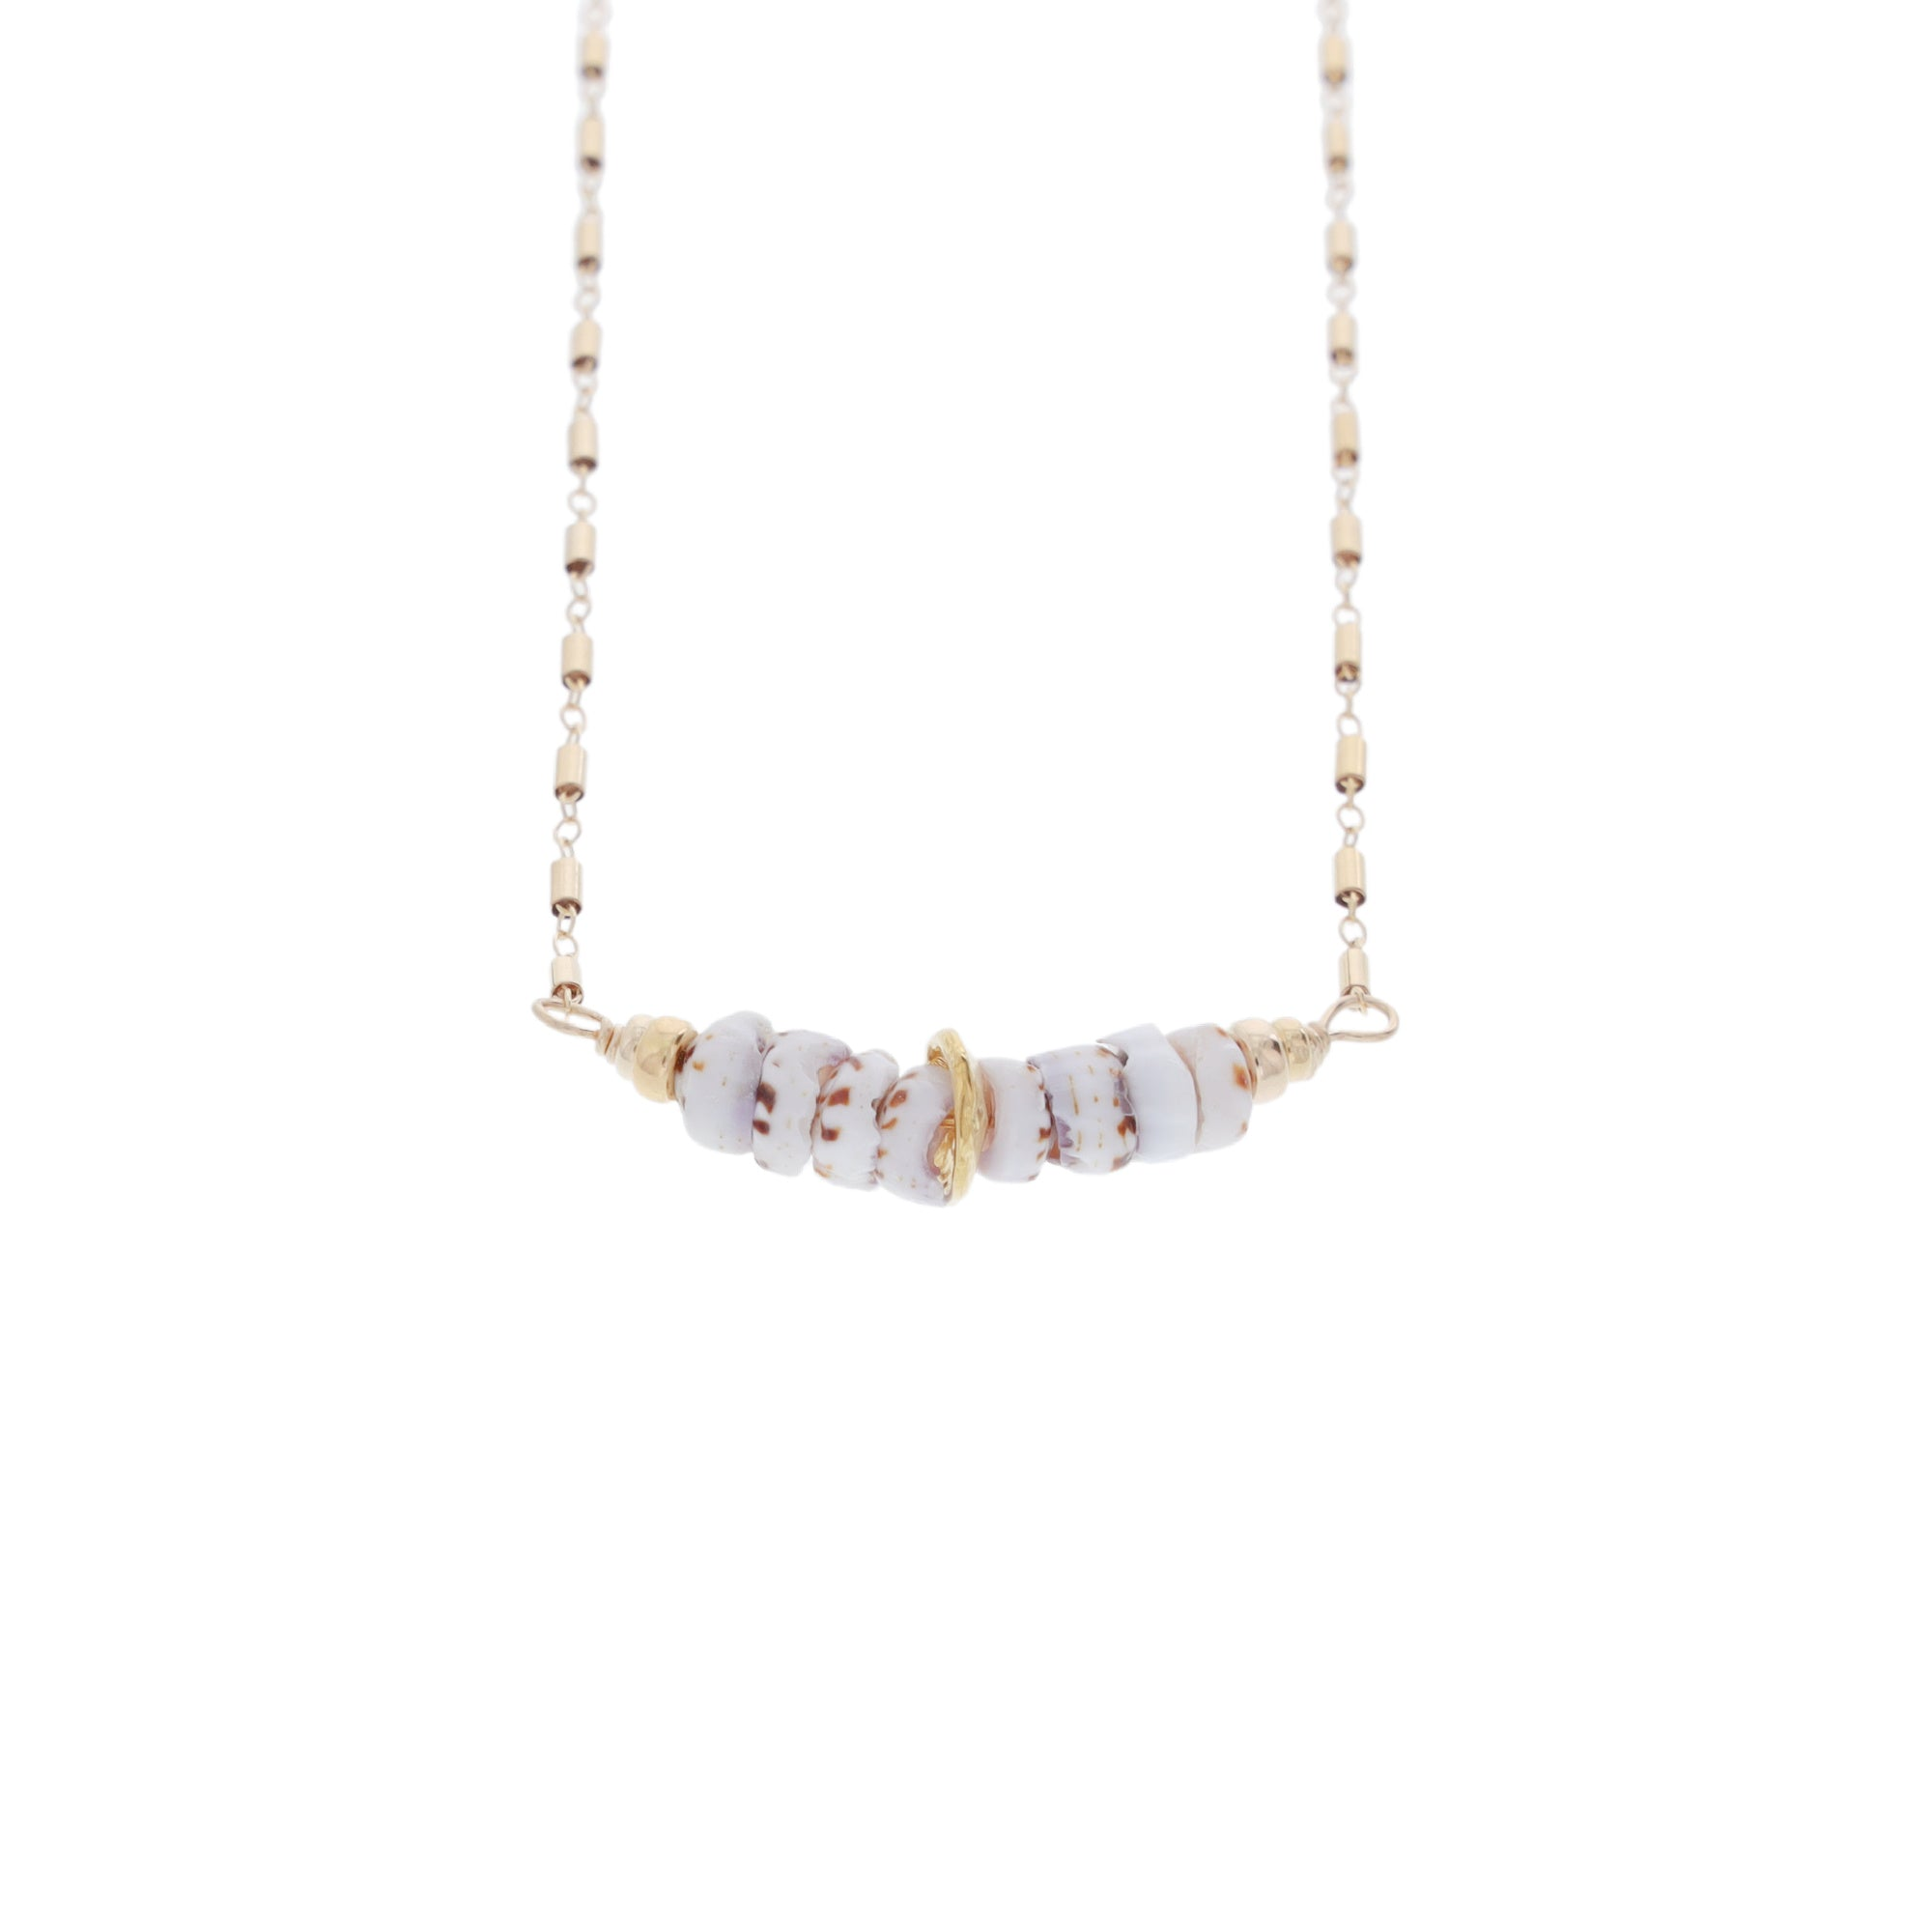 Pukalii Choker - 21 Degrees North Designs